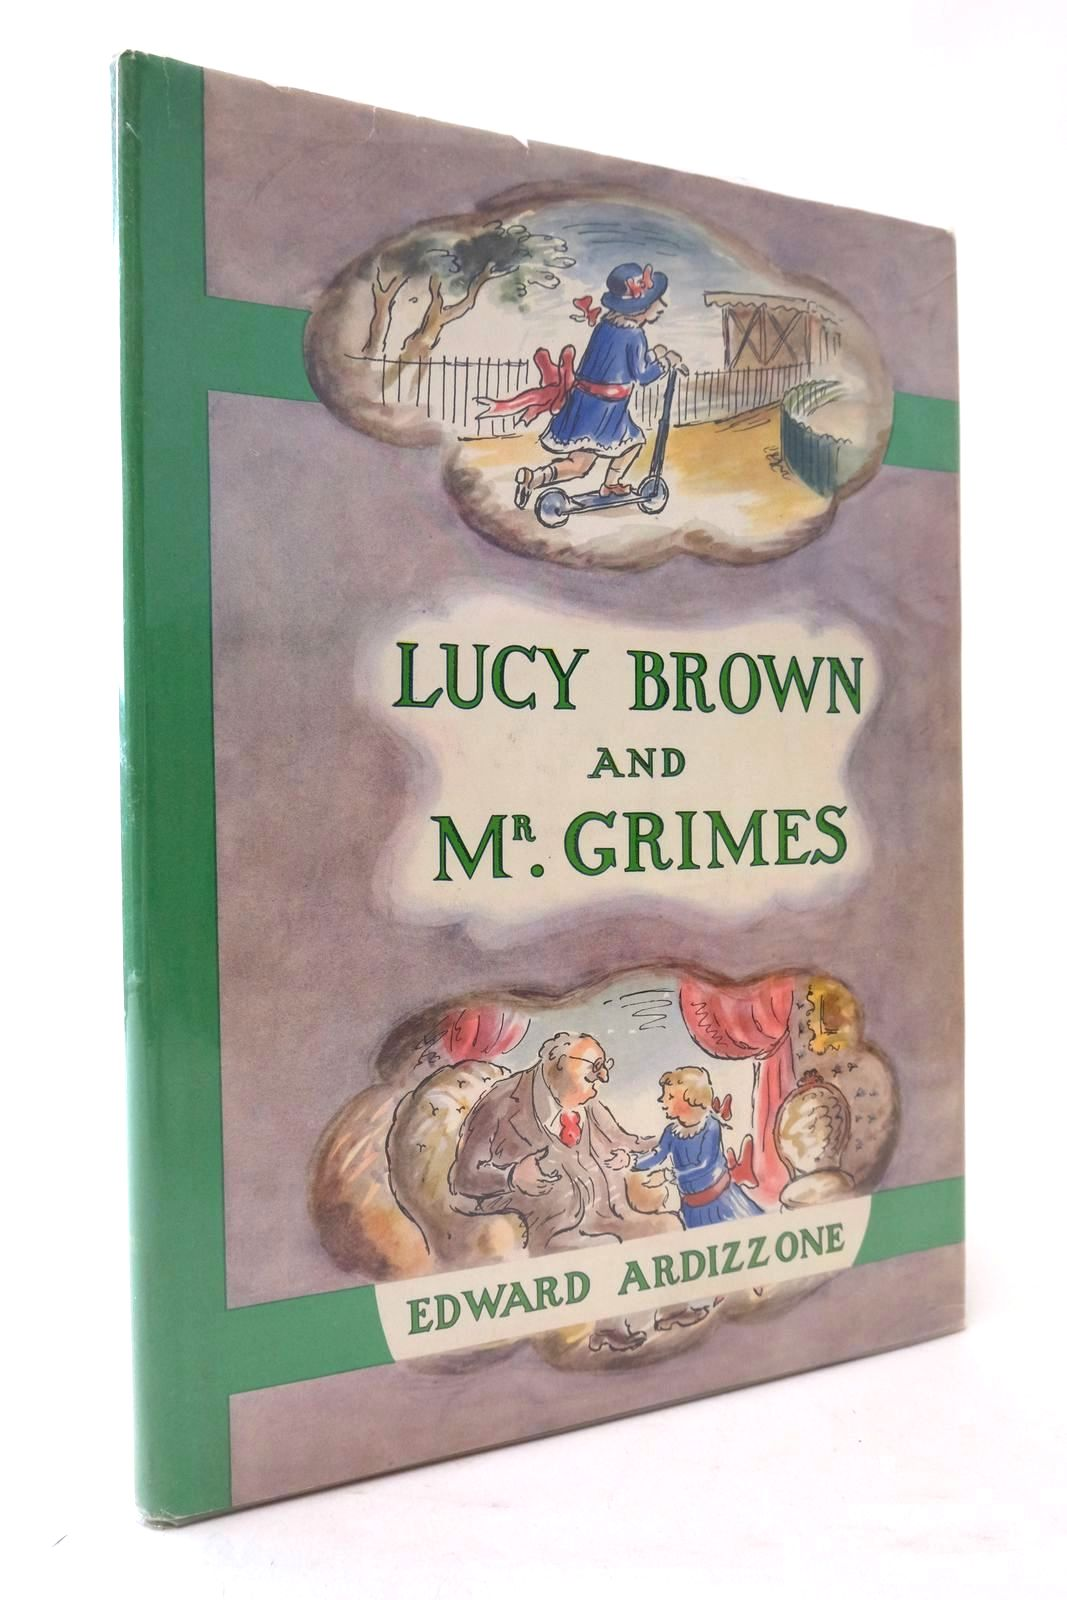 Photo of LUCY BROWN AND MR. GRIMES written by Ardizzone, Edward illustrated by Ardizzone, Edward published by Oxford University Press (STOCK CODE: 2134789)  for sale by Stella & Rose's Books